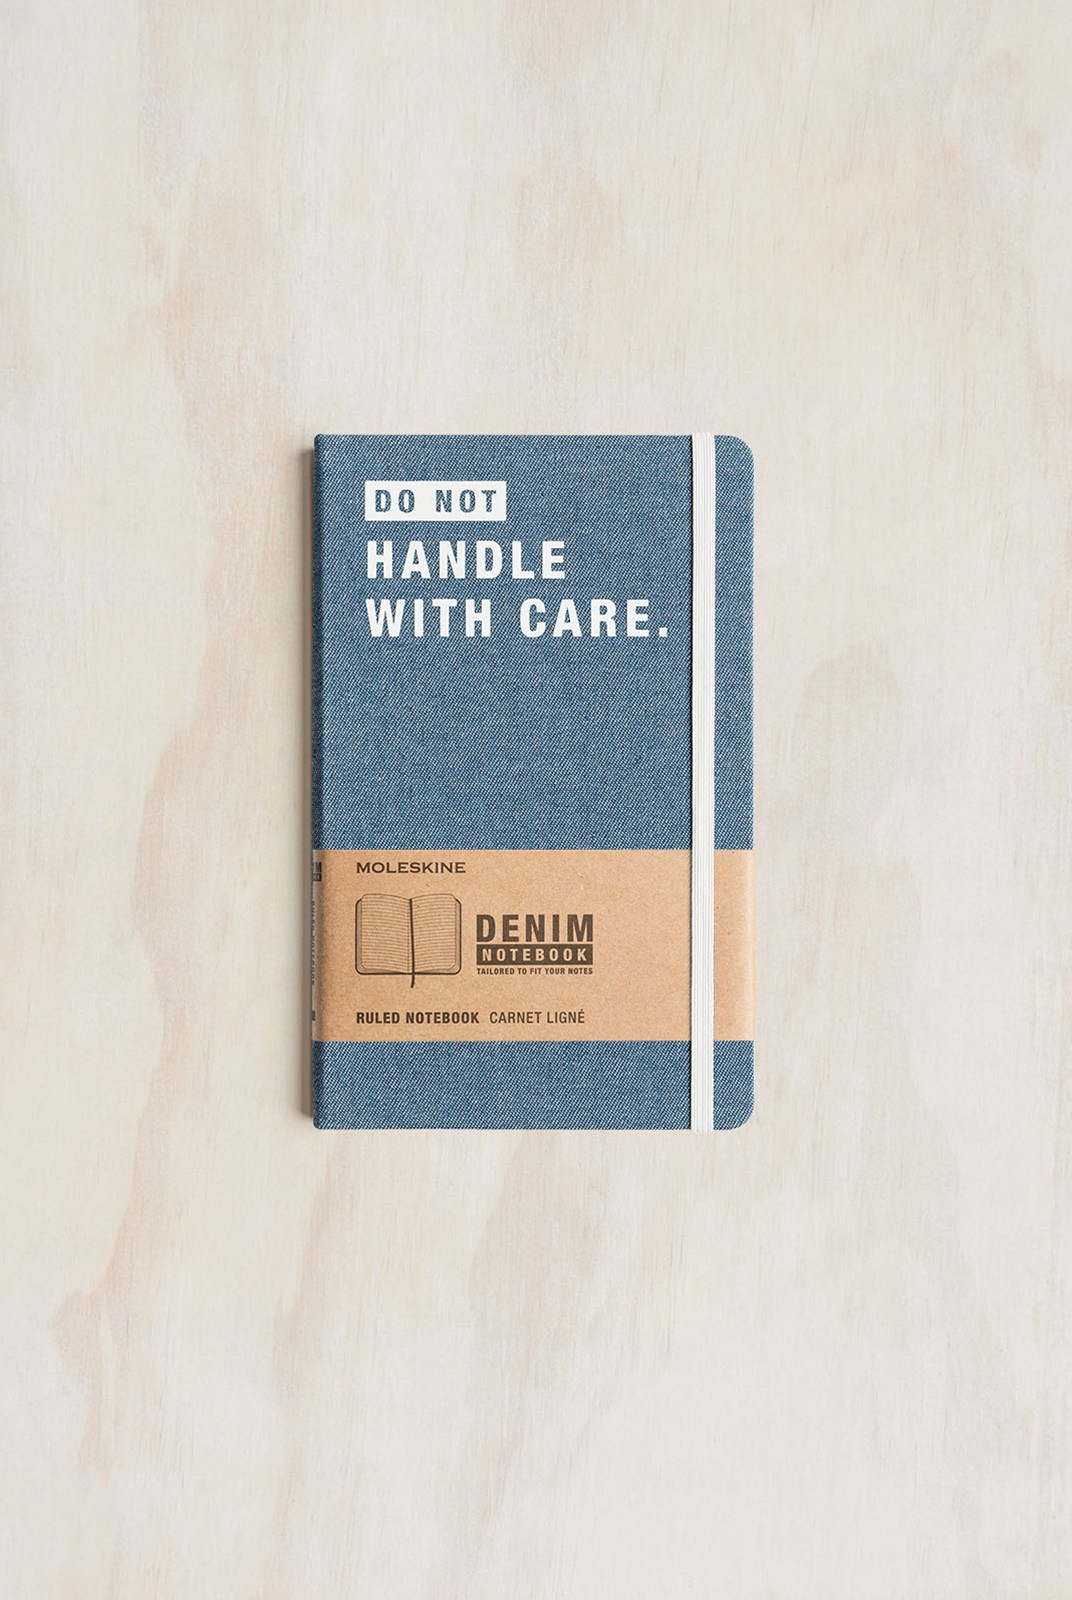 Moleskine - Denim Notebook - Ruled - Large - Handle With Care